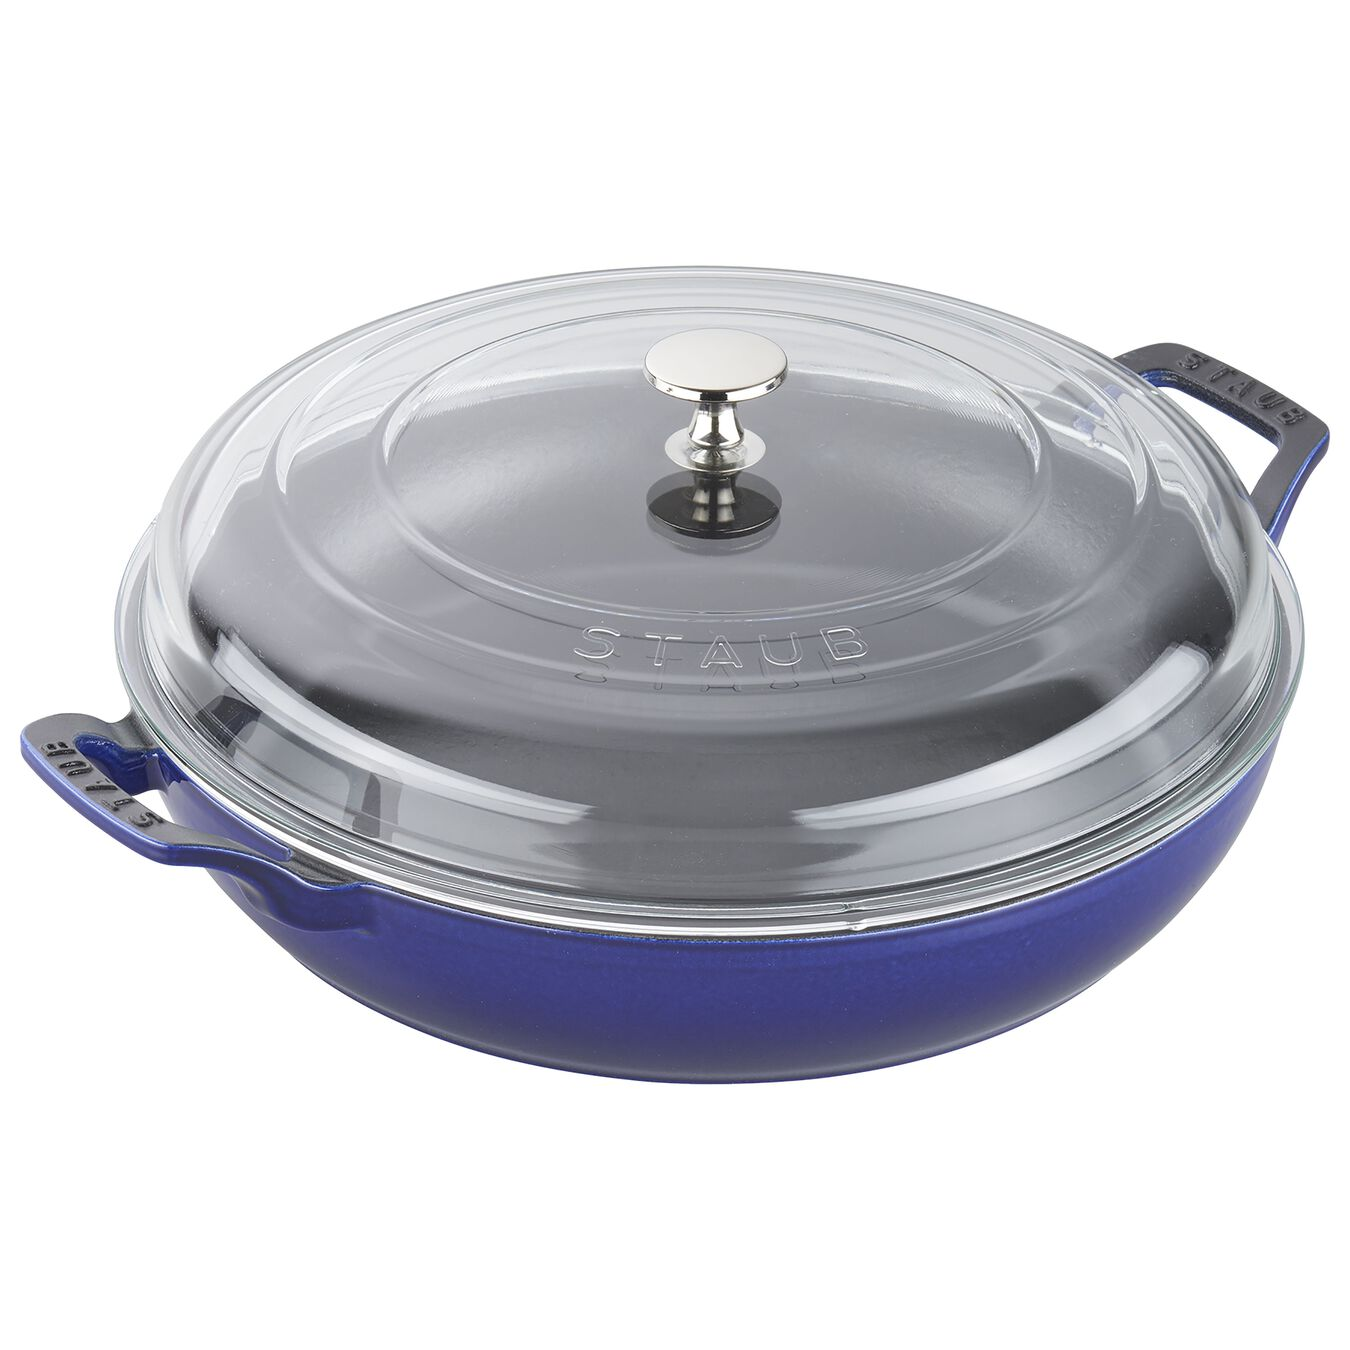 3.5-qt Braiser with Glass Lid - Dark Blue,,large 1